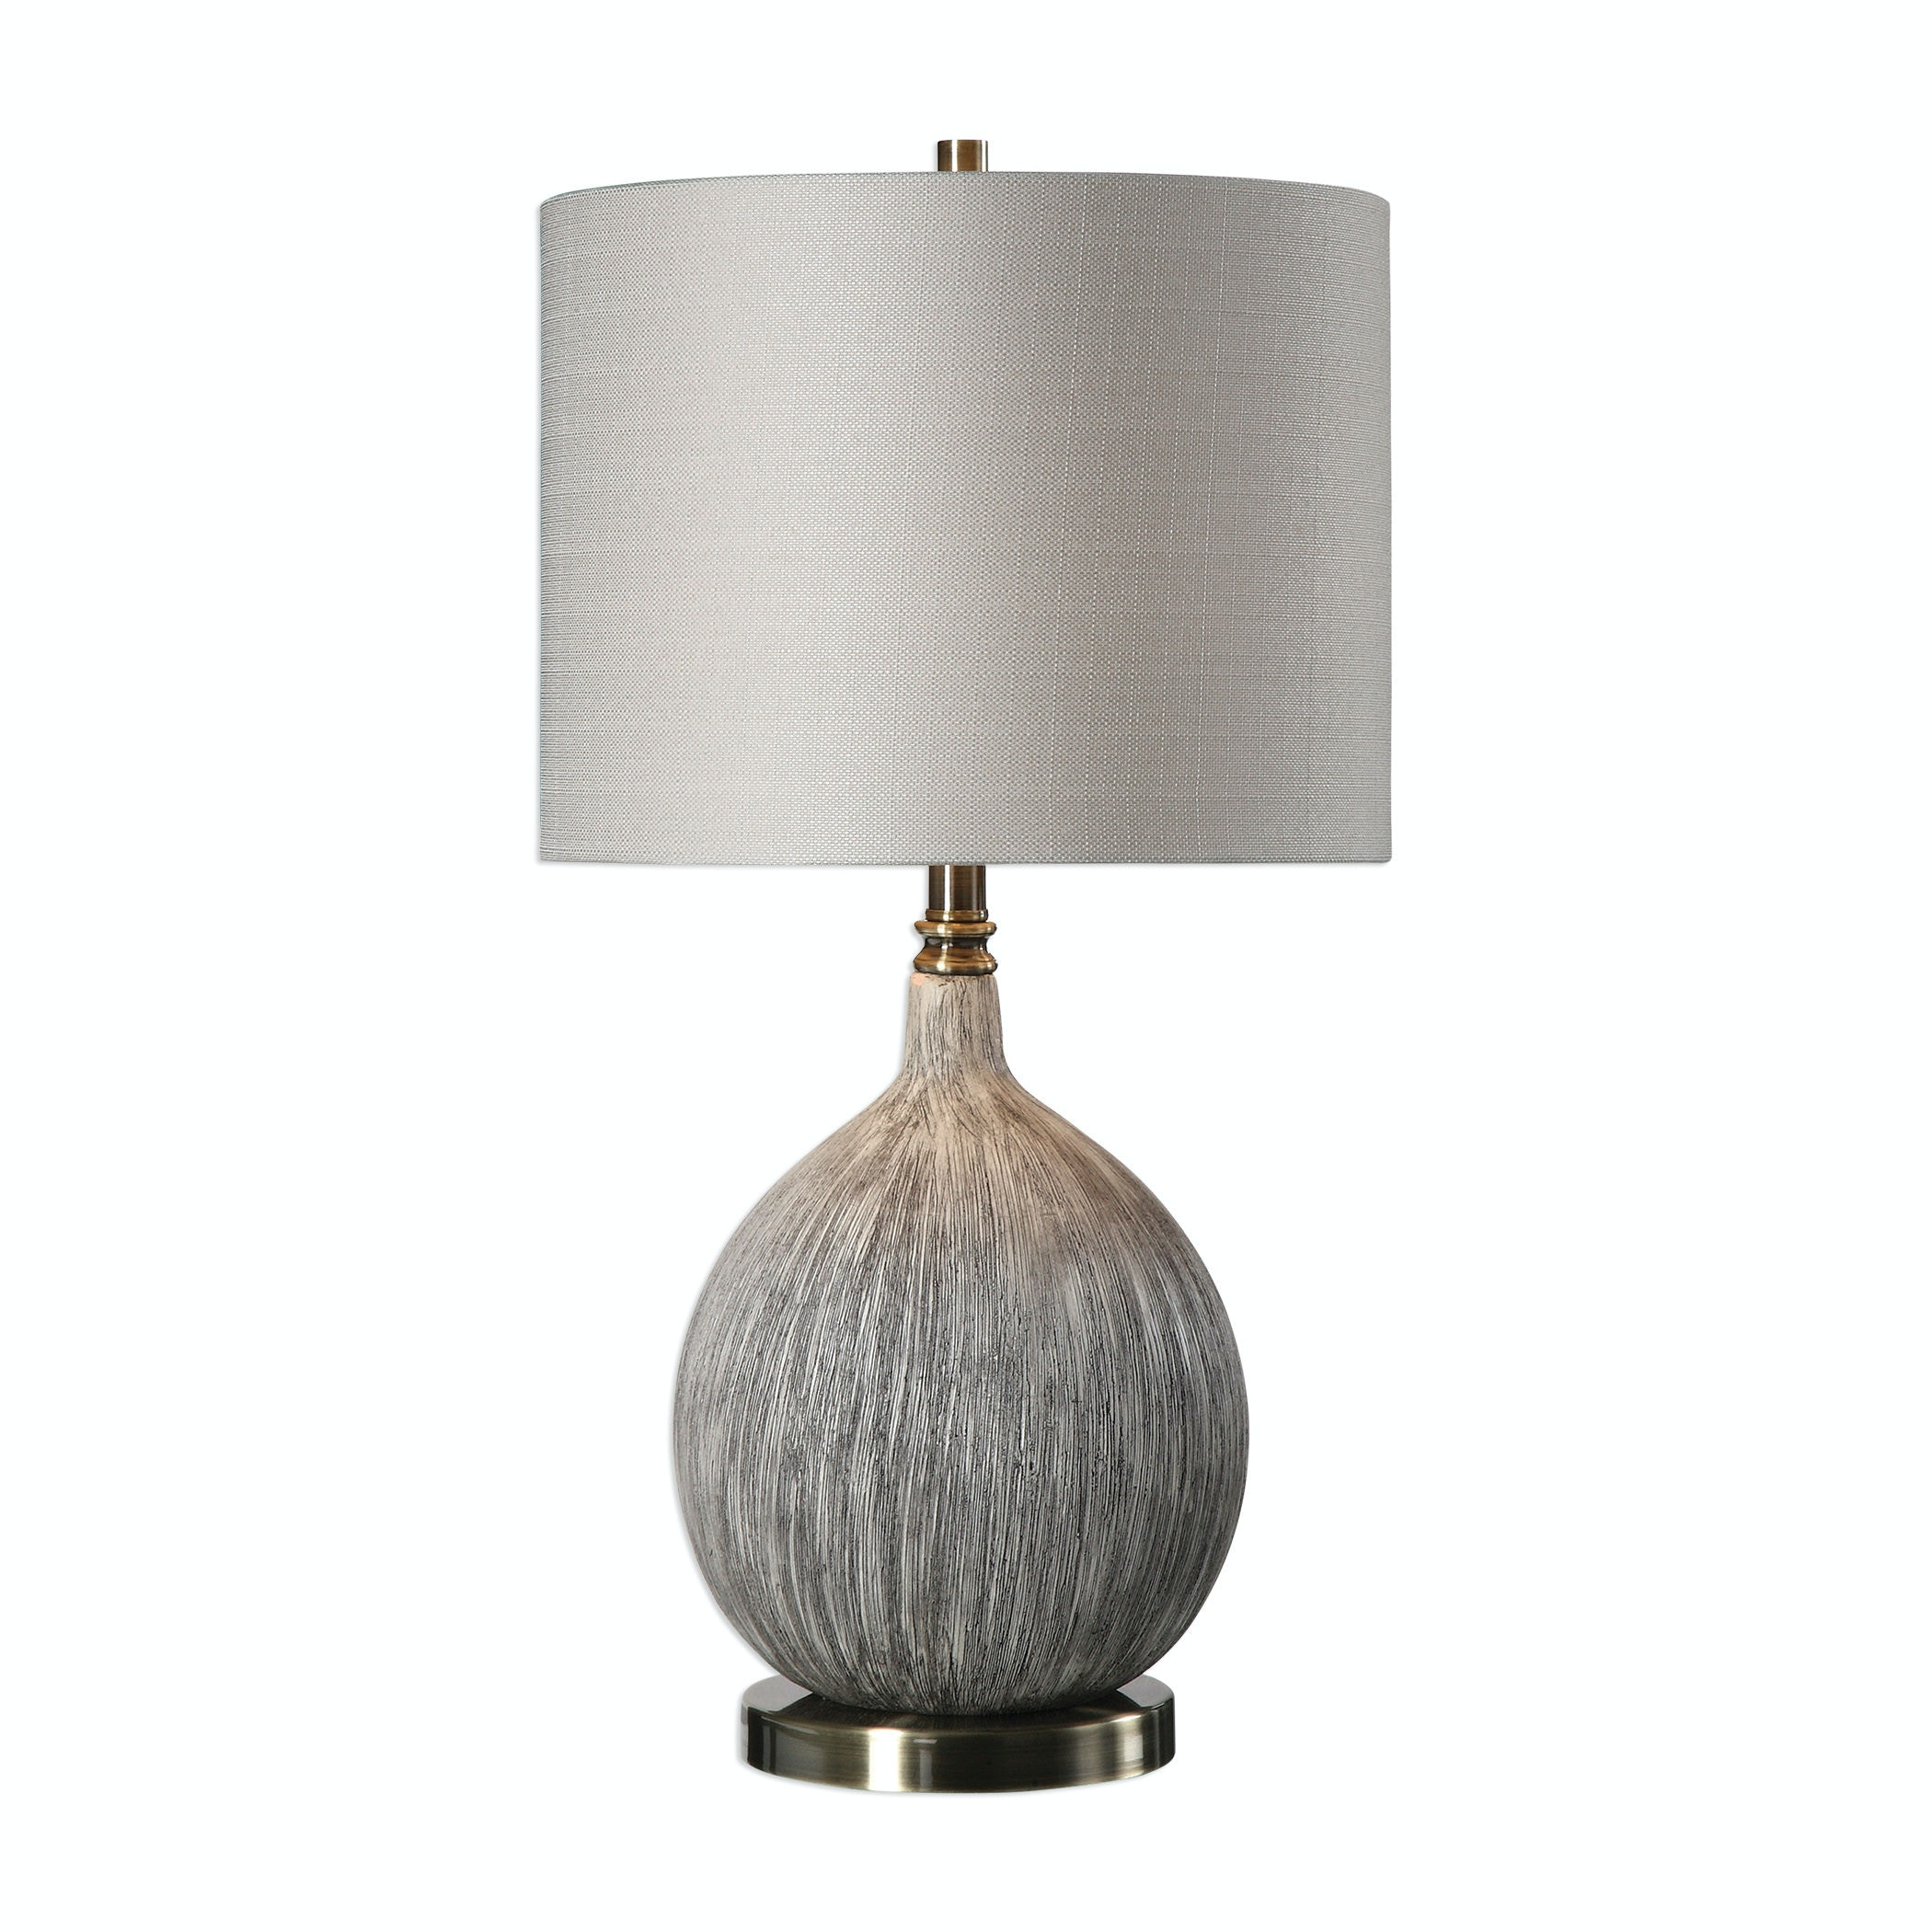 Uttermost Hedera Textured Ivory Table Lamp 27715 1